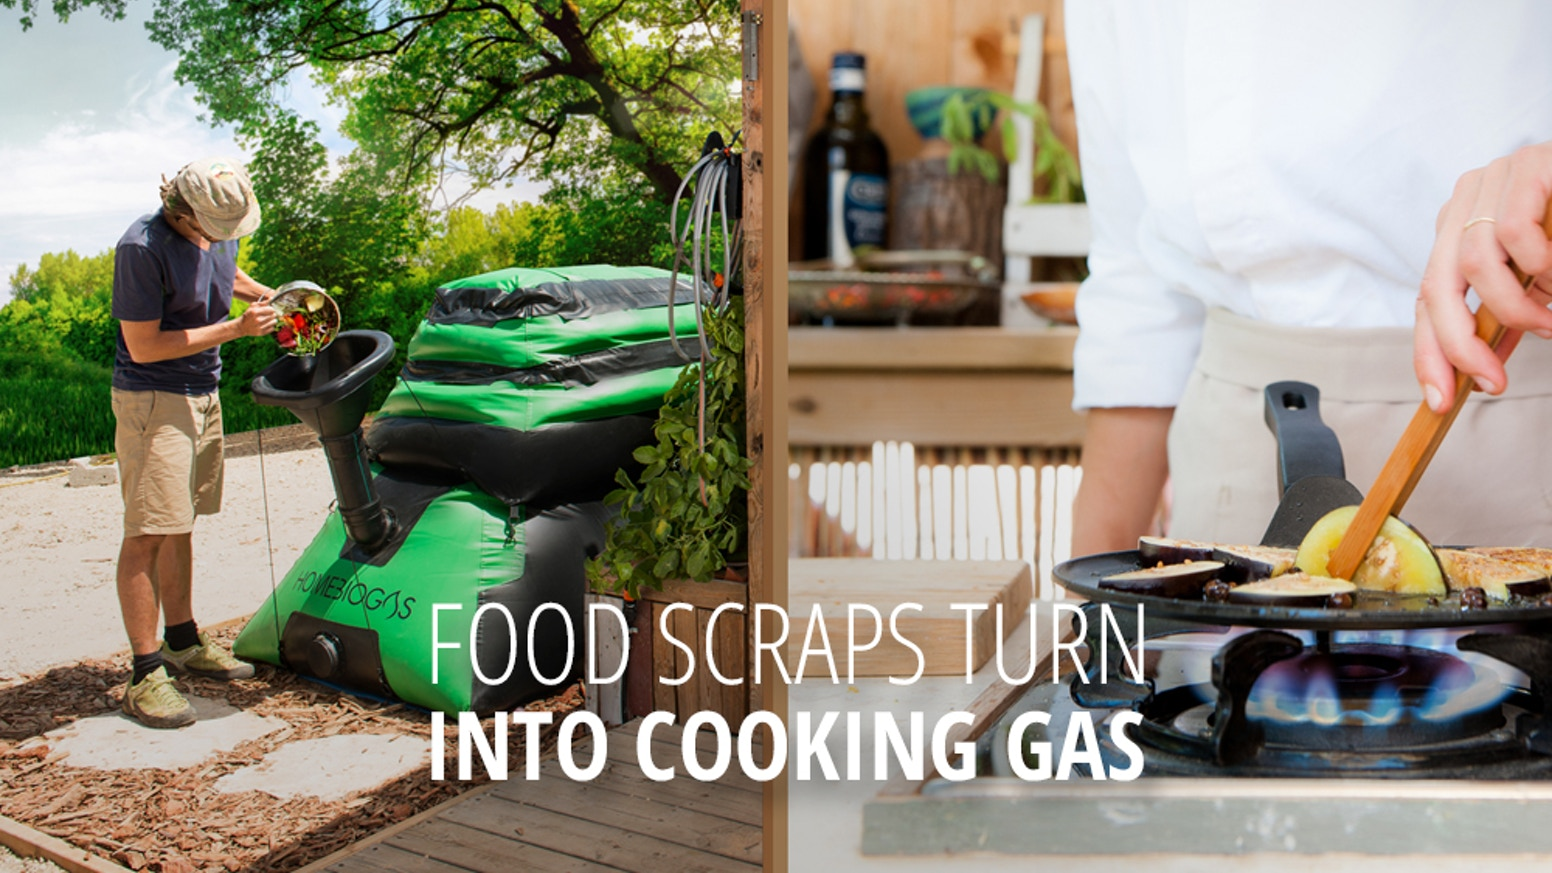 Homebiogas 20 Transforms Your Food Waste Into Clean Energy By The Back Shed Recycled Items Used To Generate Power Recycle Scraps In A Completely Safe And Convenient Way Make Renewable